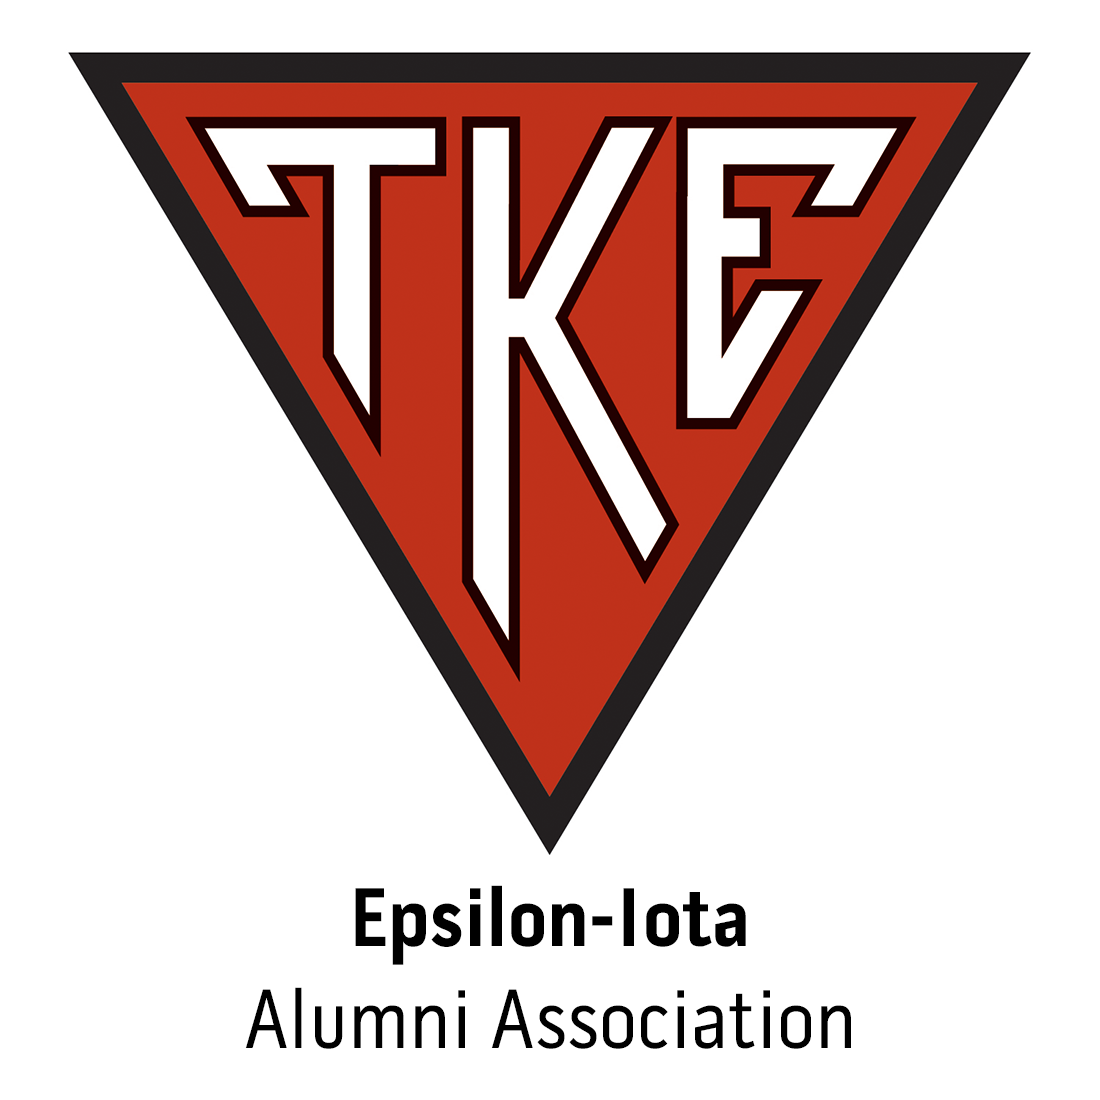 Epsilon-Iota Alumni Association Alumni at Youngstown State University